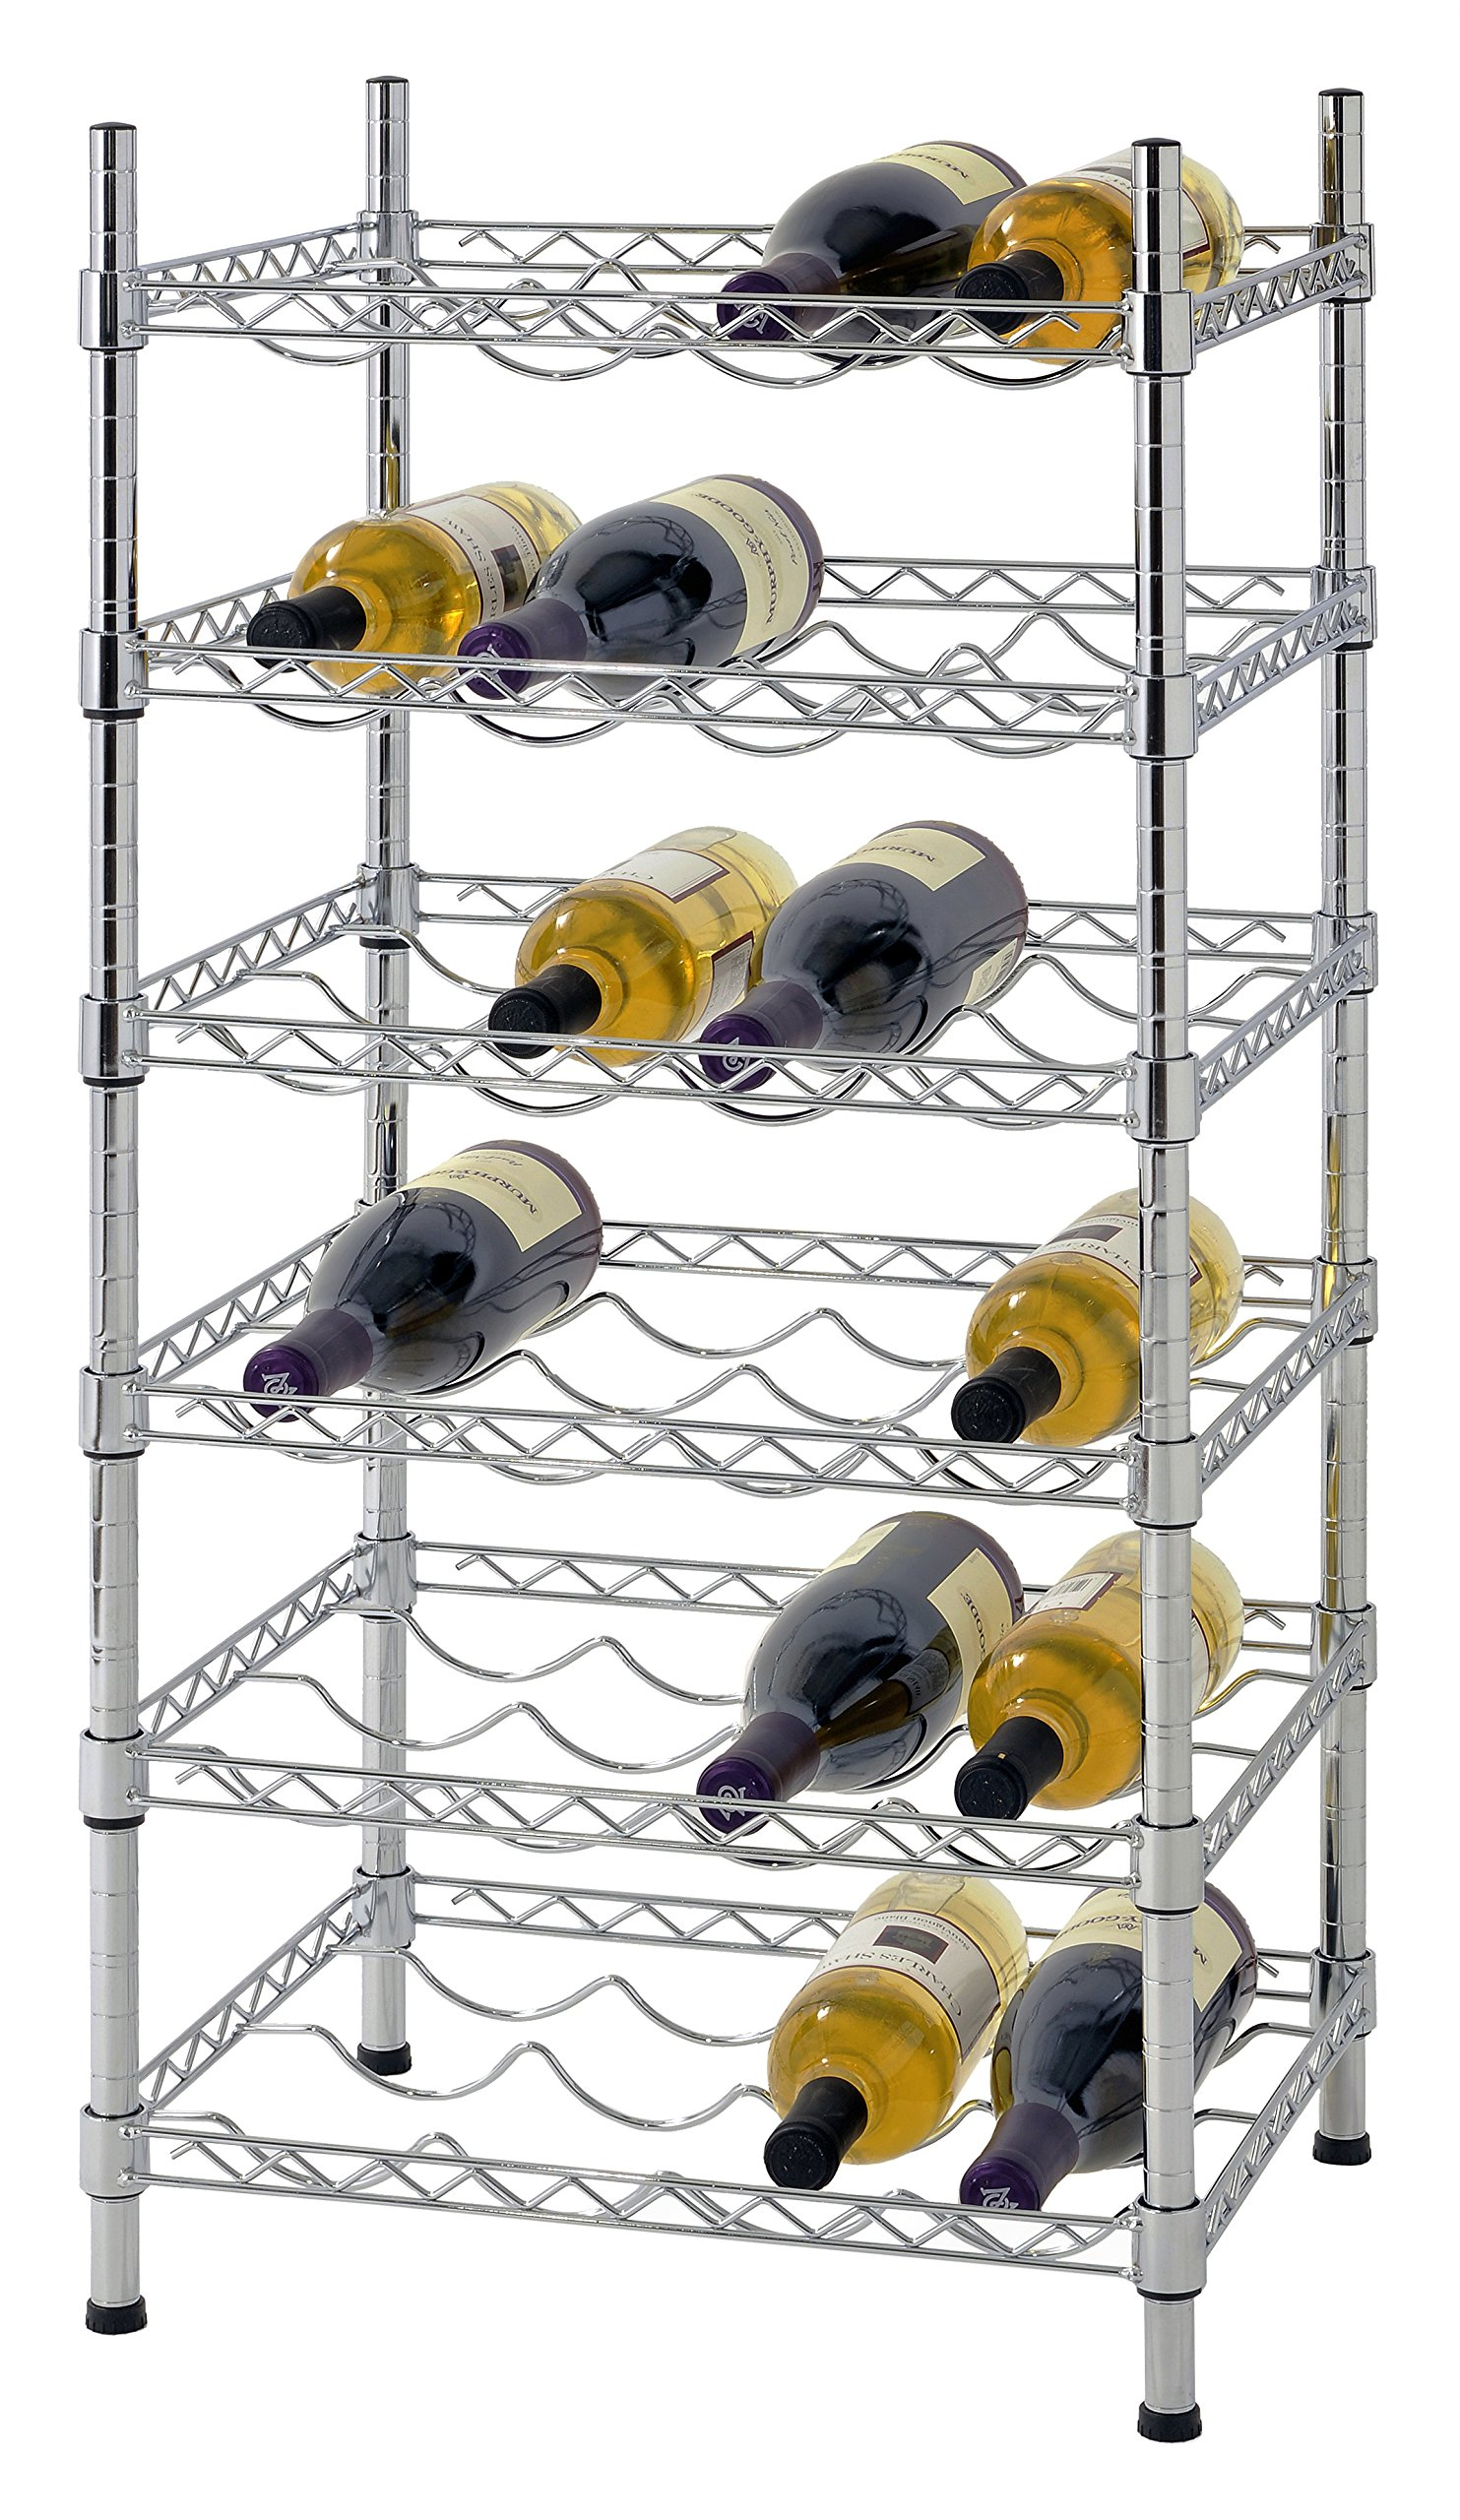 Muscle Rack WBS181435 24-Bottle Chrome Wine Rack, 18'' by 14'' by 35'', 35'' Height, 18'' Width, 660 lb. Load Capacity by Muscle Rack (Image #1)